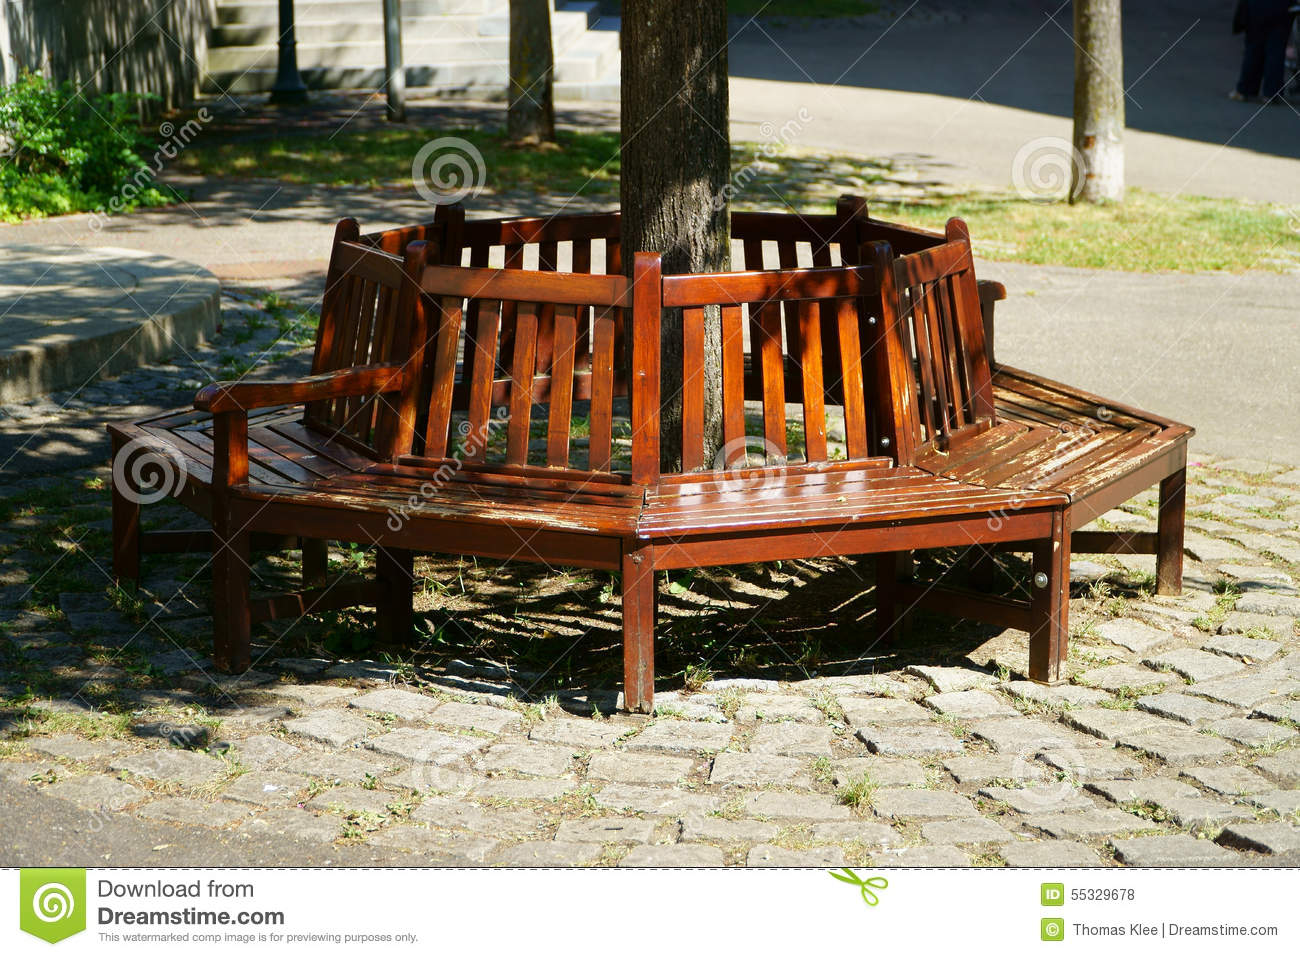 Amazing photo of Wooden Bench Around A Tree Stock Photo Image: 55329678 with #B44917 color and 1300x957 pixels